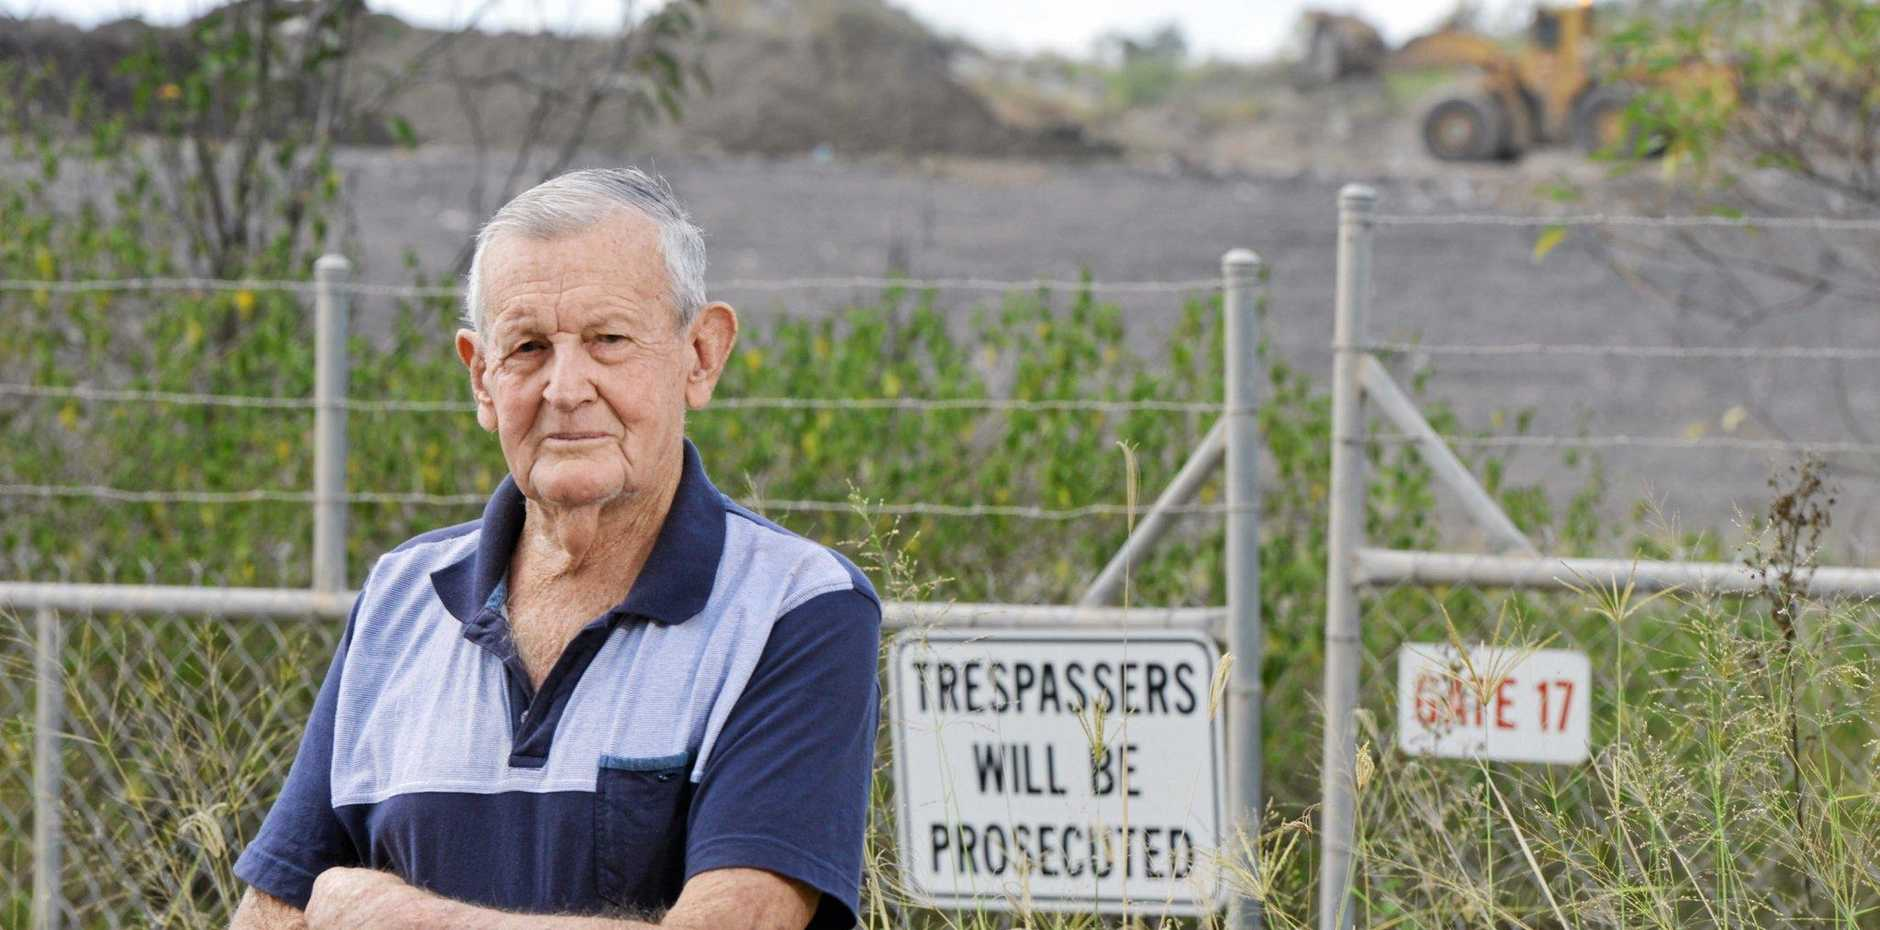 Swanbank resident Joe Llewellyn is angry about the odour that comes from the local industry surrounding his home.